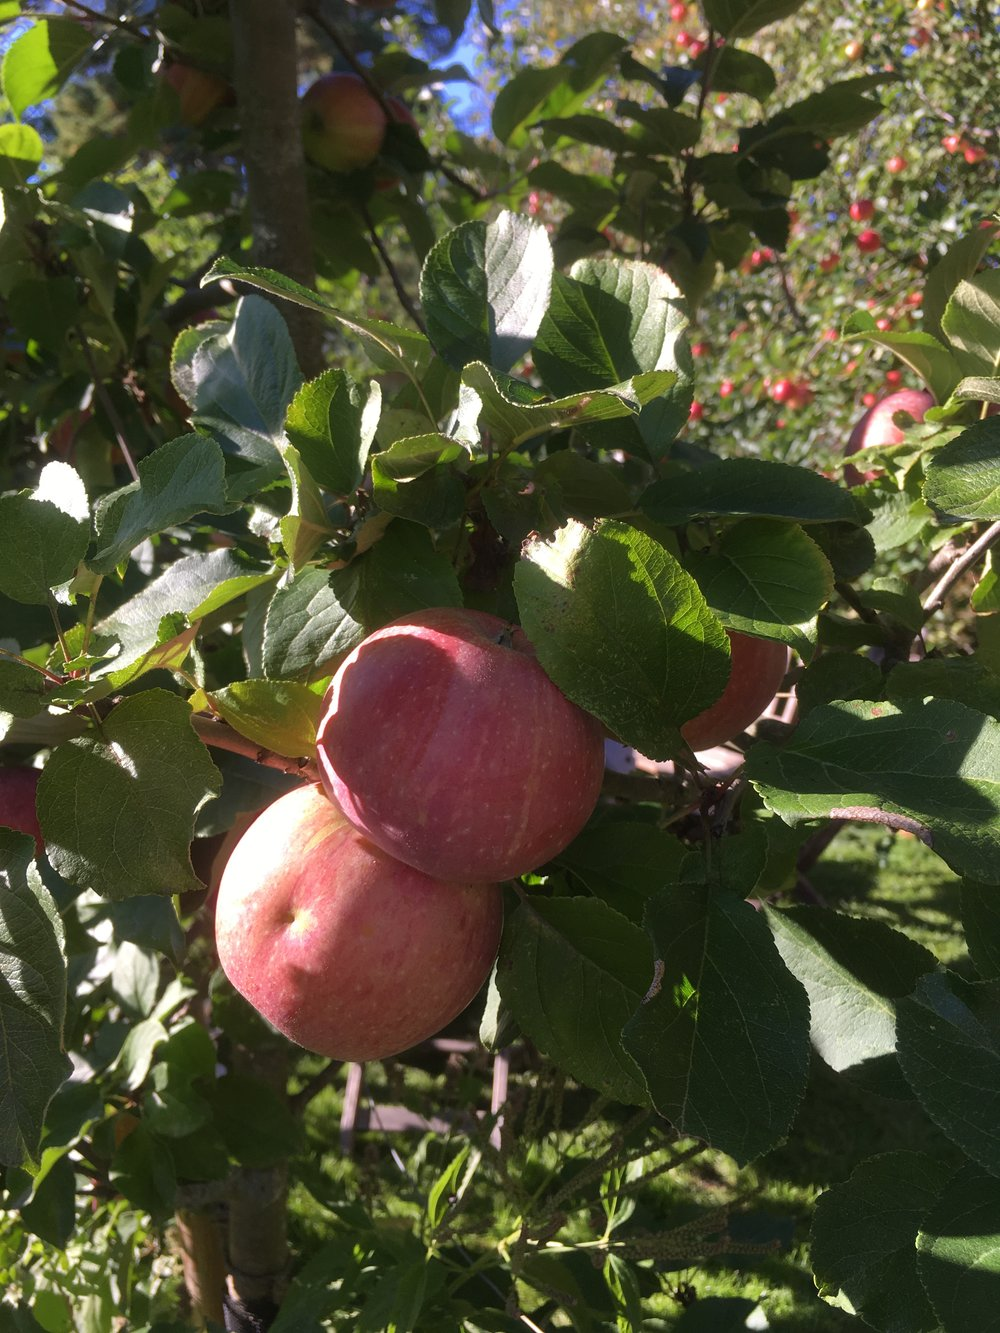 Apples growing at the cake stop. More about this later!